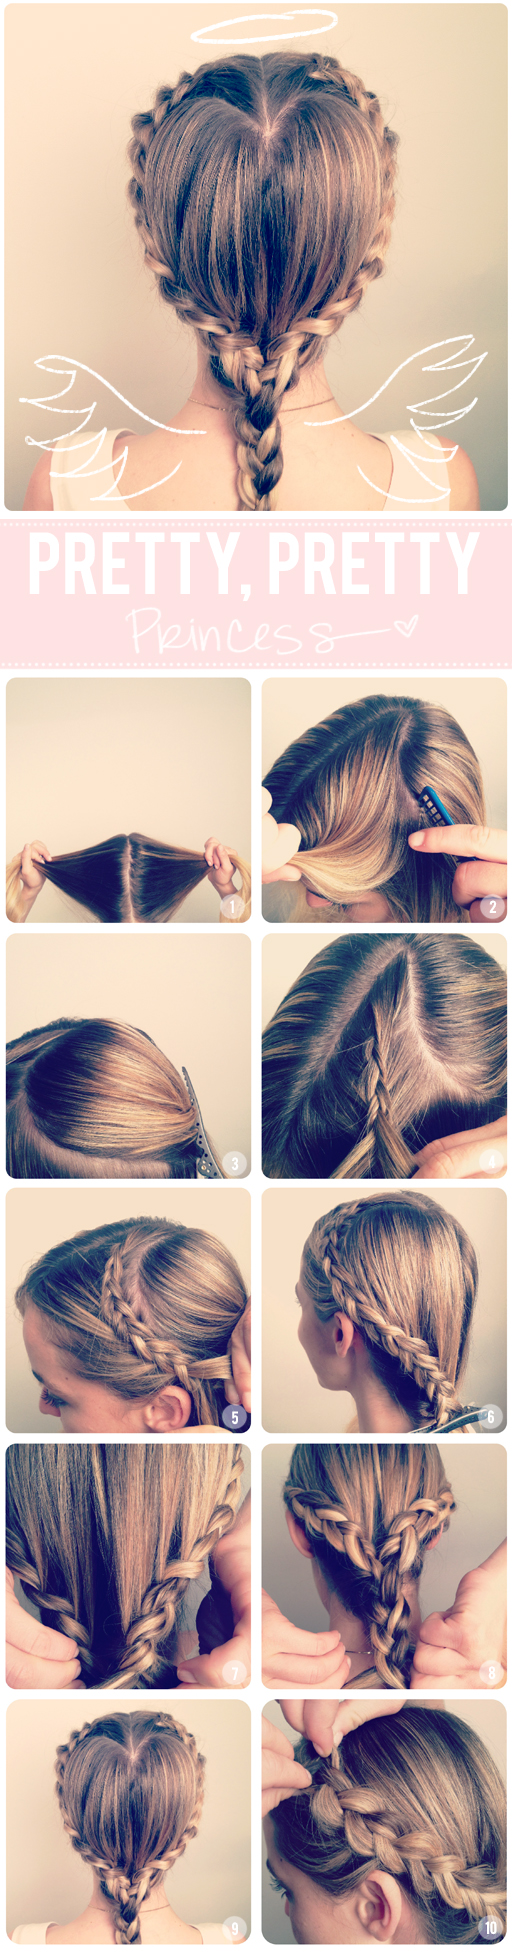 Easy Hairstyles For Short Hair Tumblr